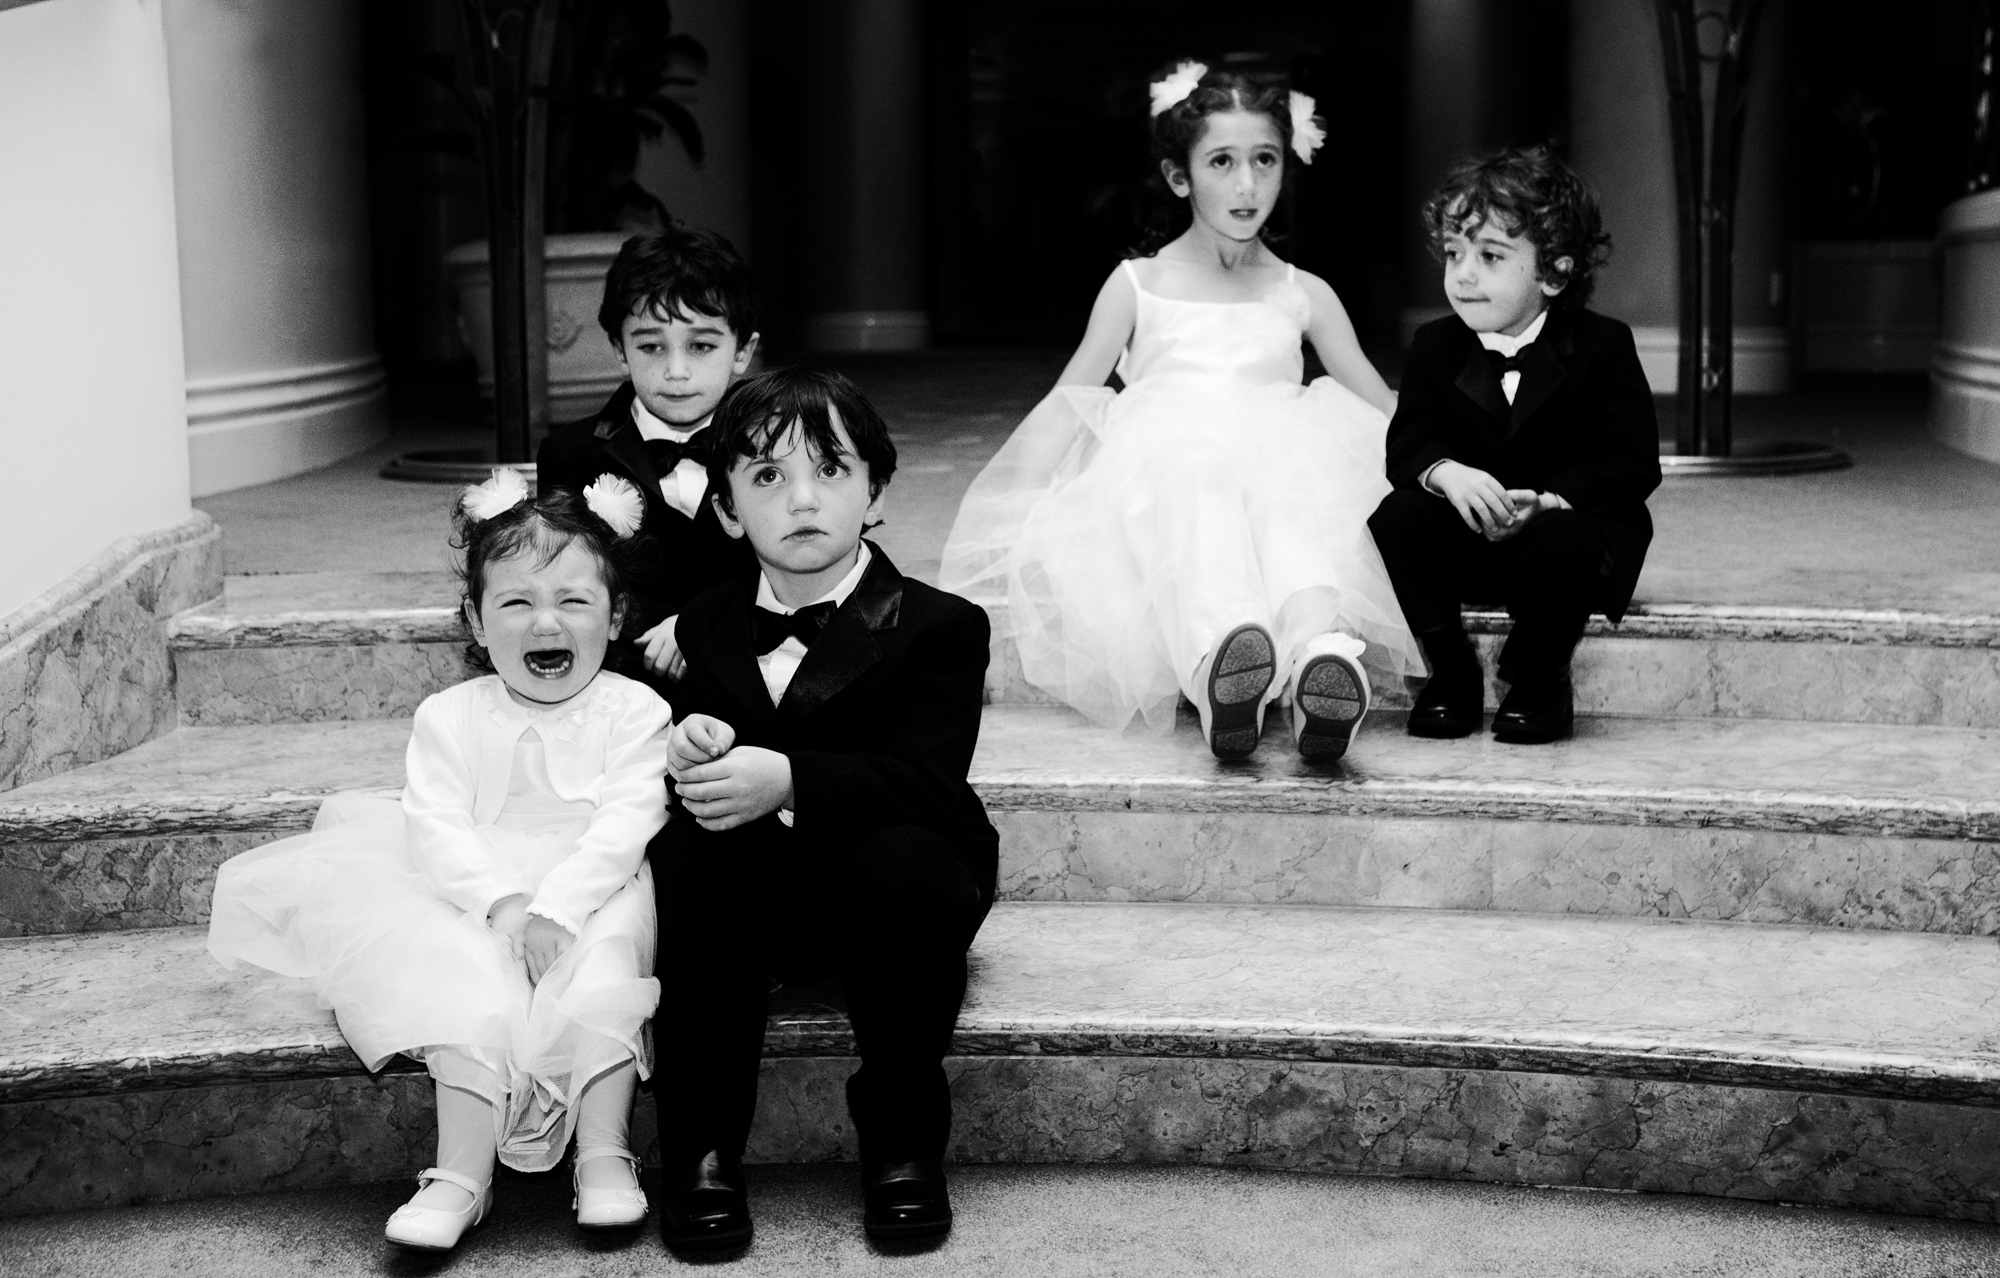 Adorable little girl crying with kids at wedding - photo by Roberto Valenzuela